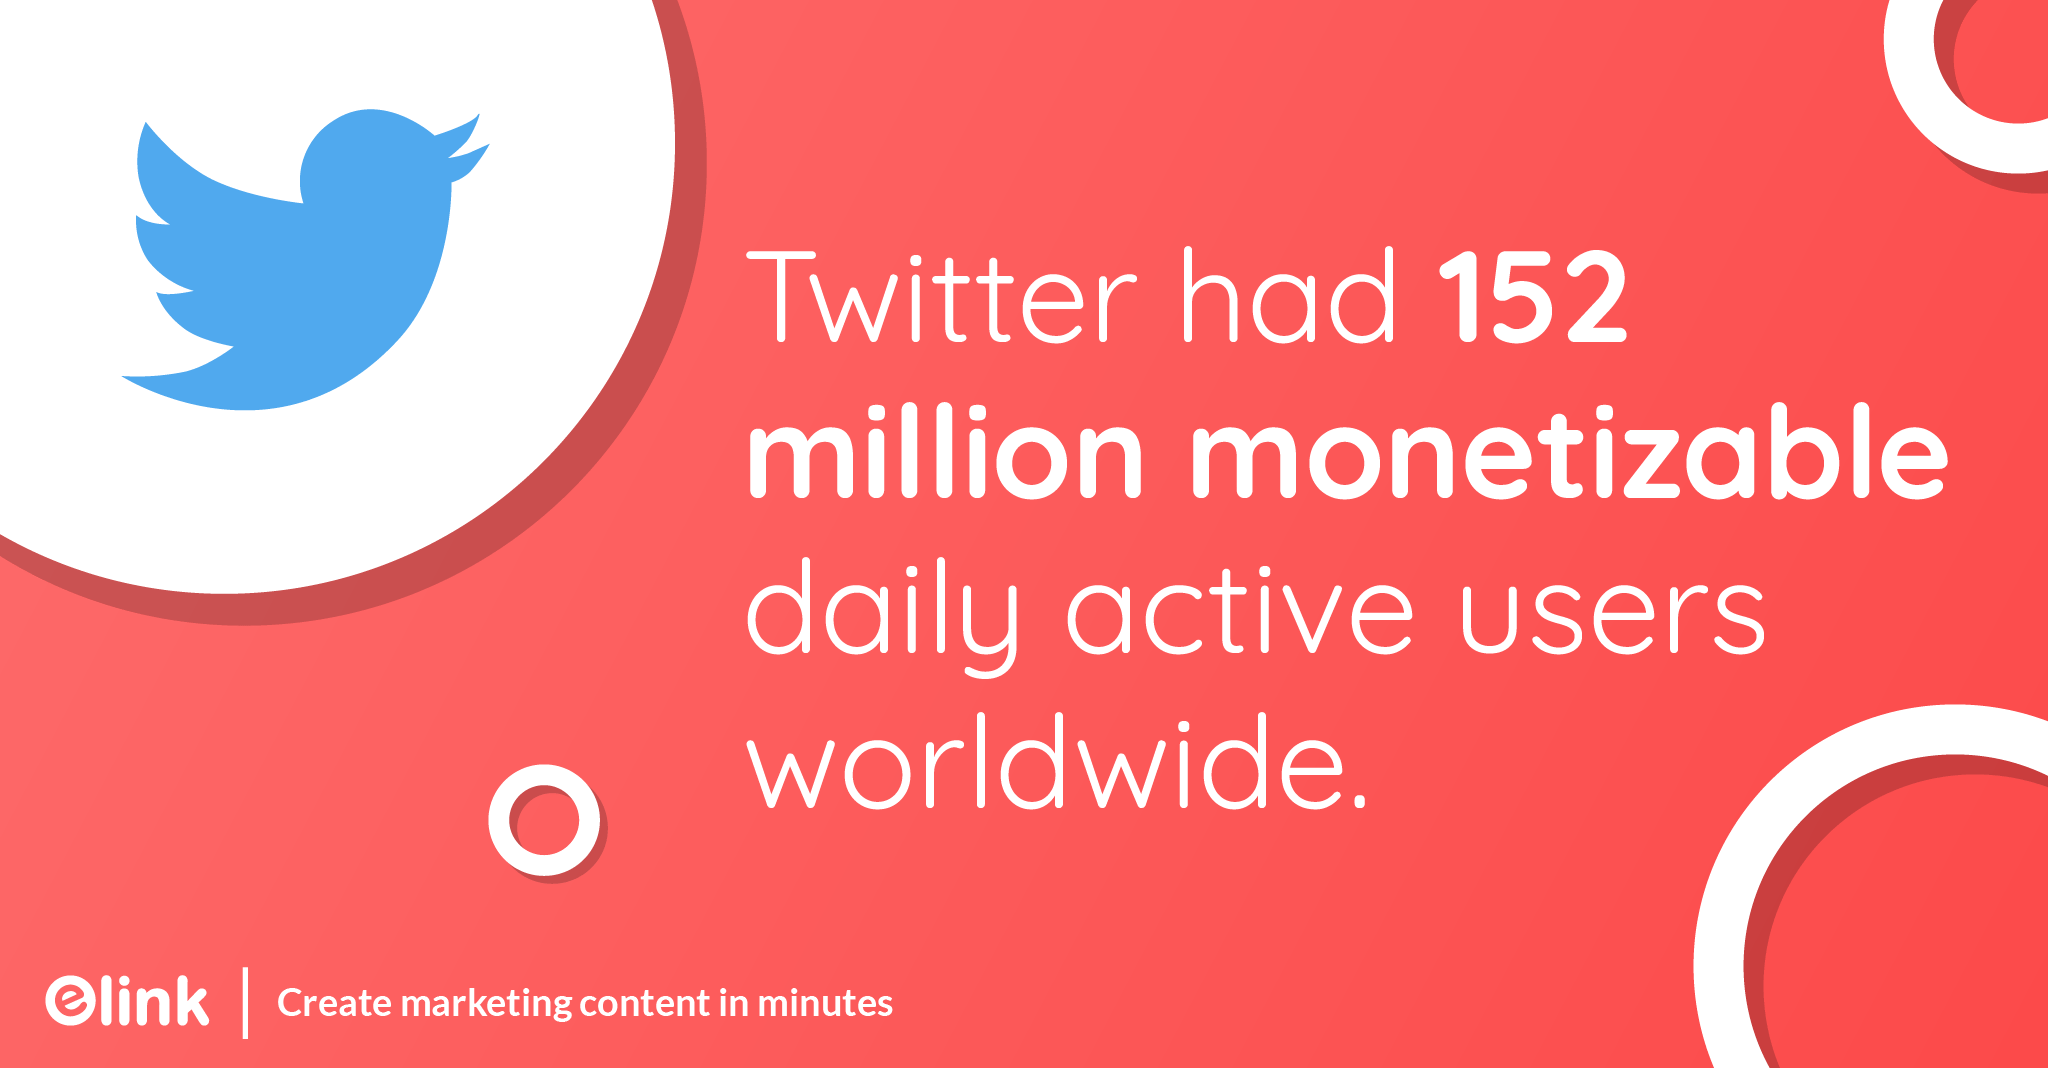 Twitter had 152 million monetizable daily active users worldwide.